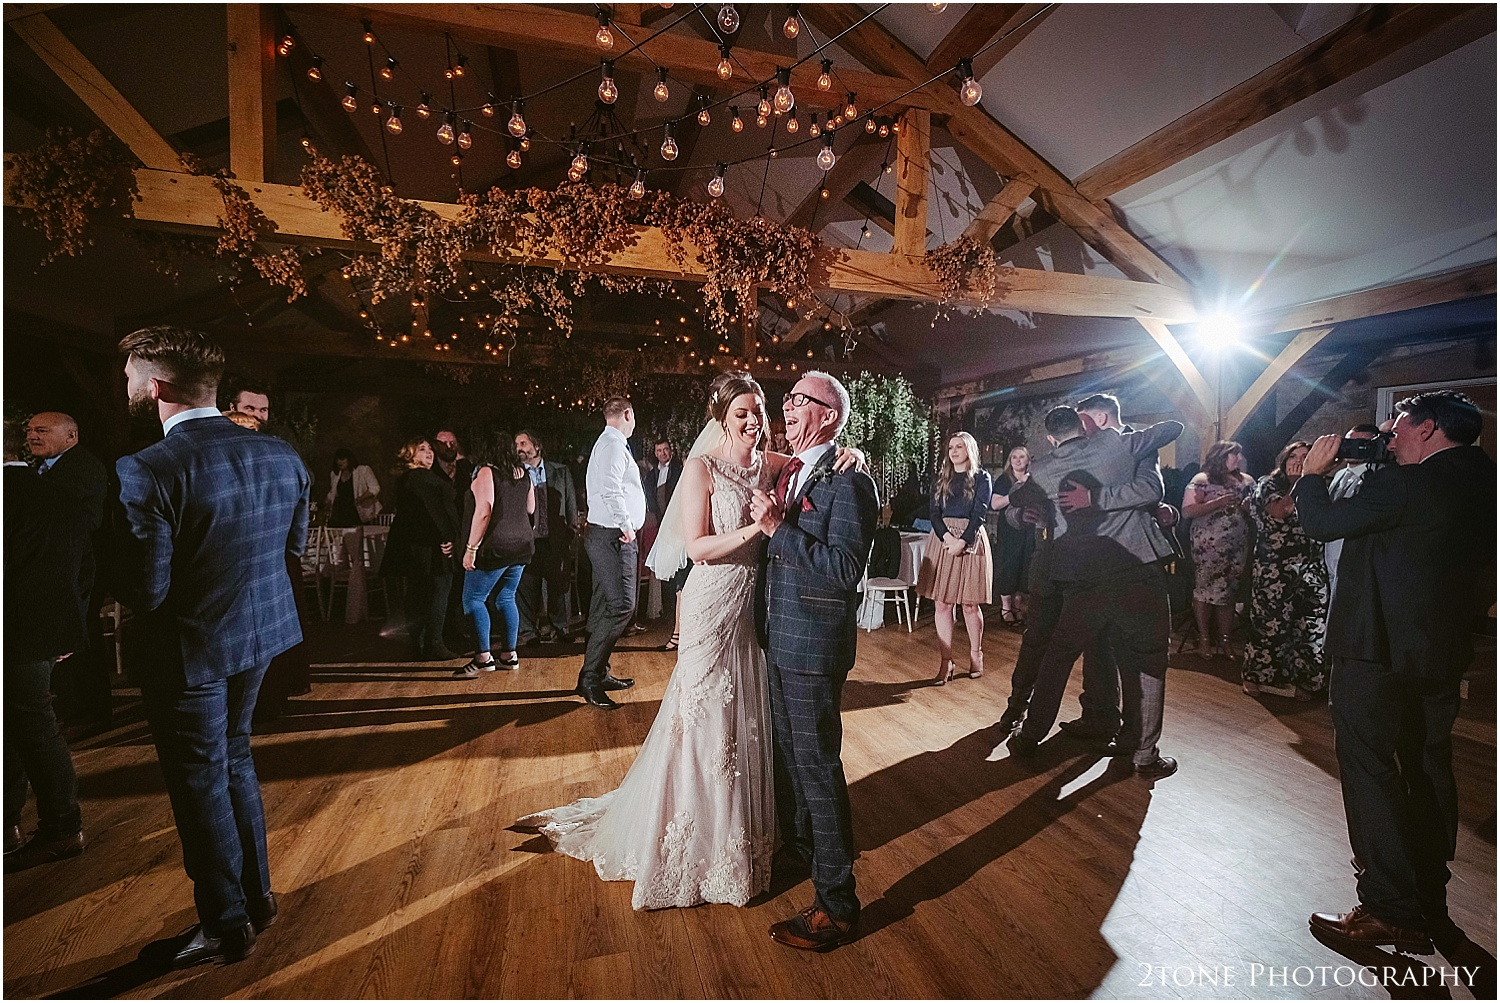 Doxford Barns wedding photos 101.jpg